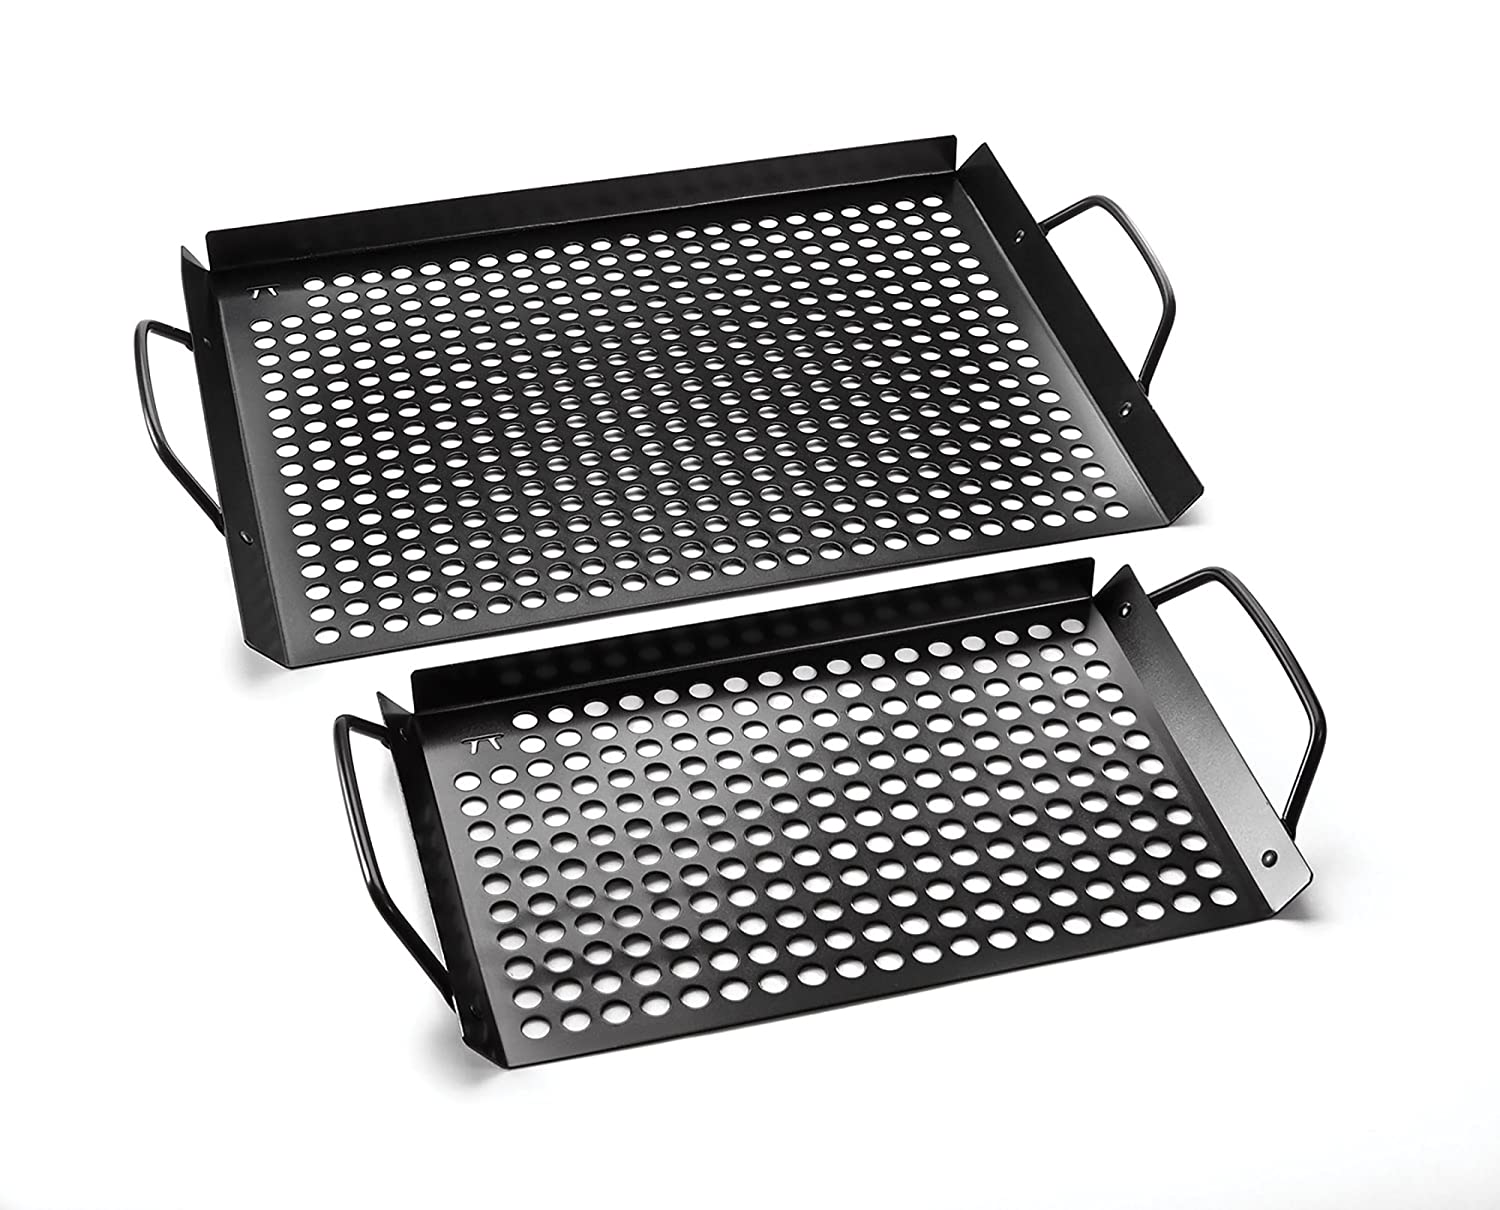 Outset 76452 Non-Stick Sale special price Grilling Bargain and Bbq 7